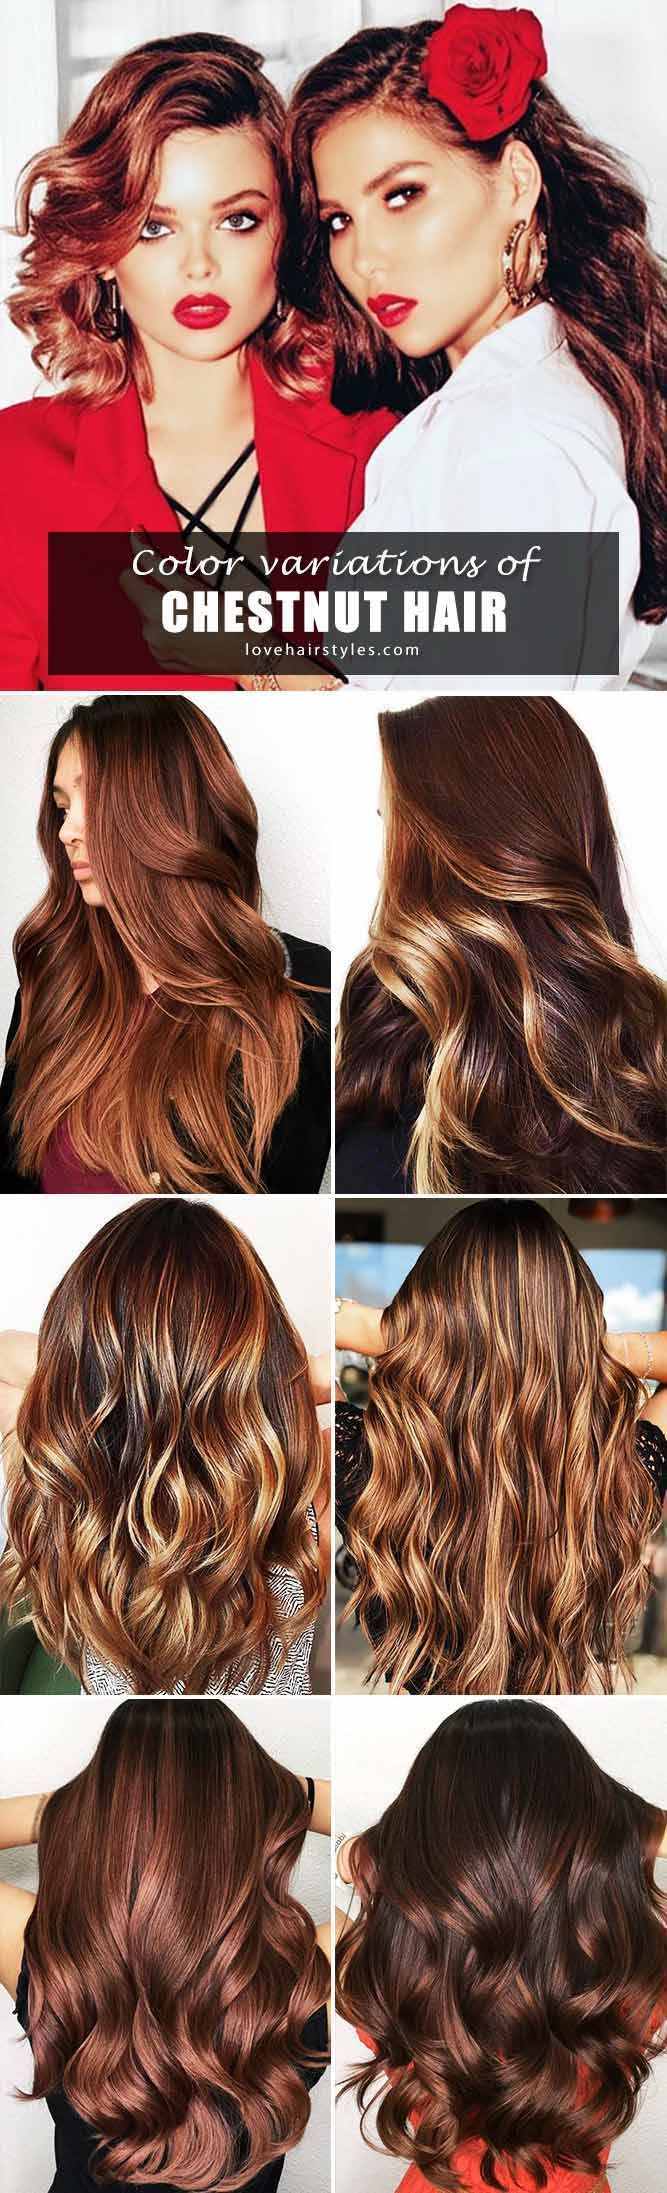 Hair Color 2017 2018 Want To Find Some Chestnut Hair Color